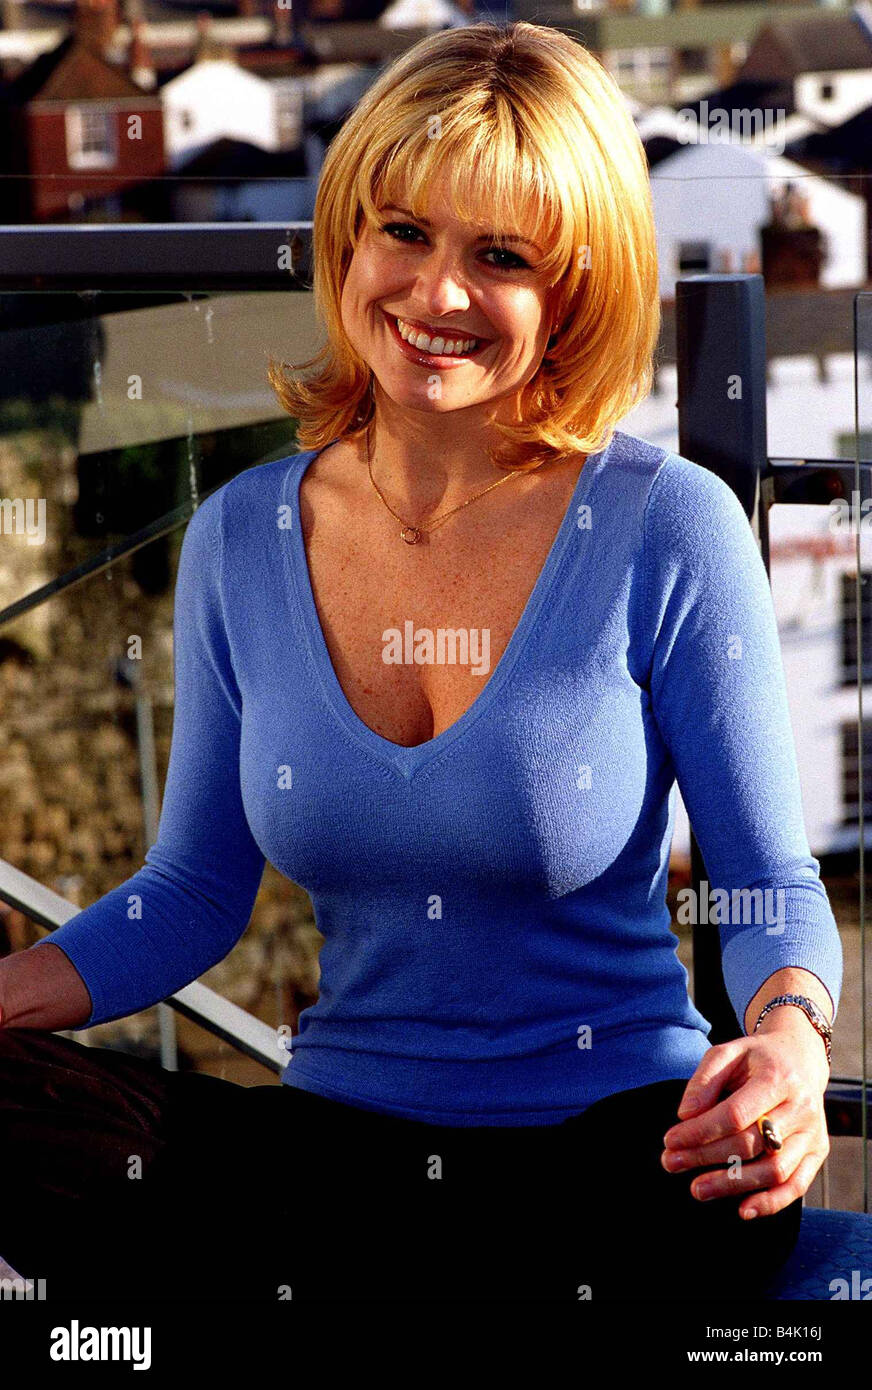 Cleavage Emily Symons nudes (61 photo), Tits, Sideboobs, Instagram, cleavage 2006